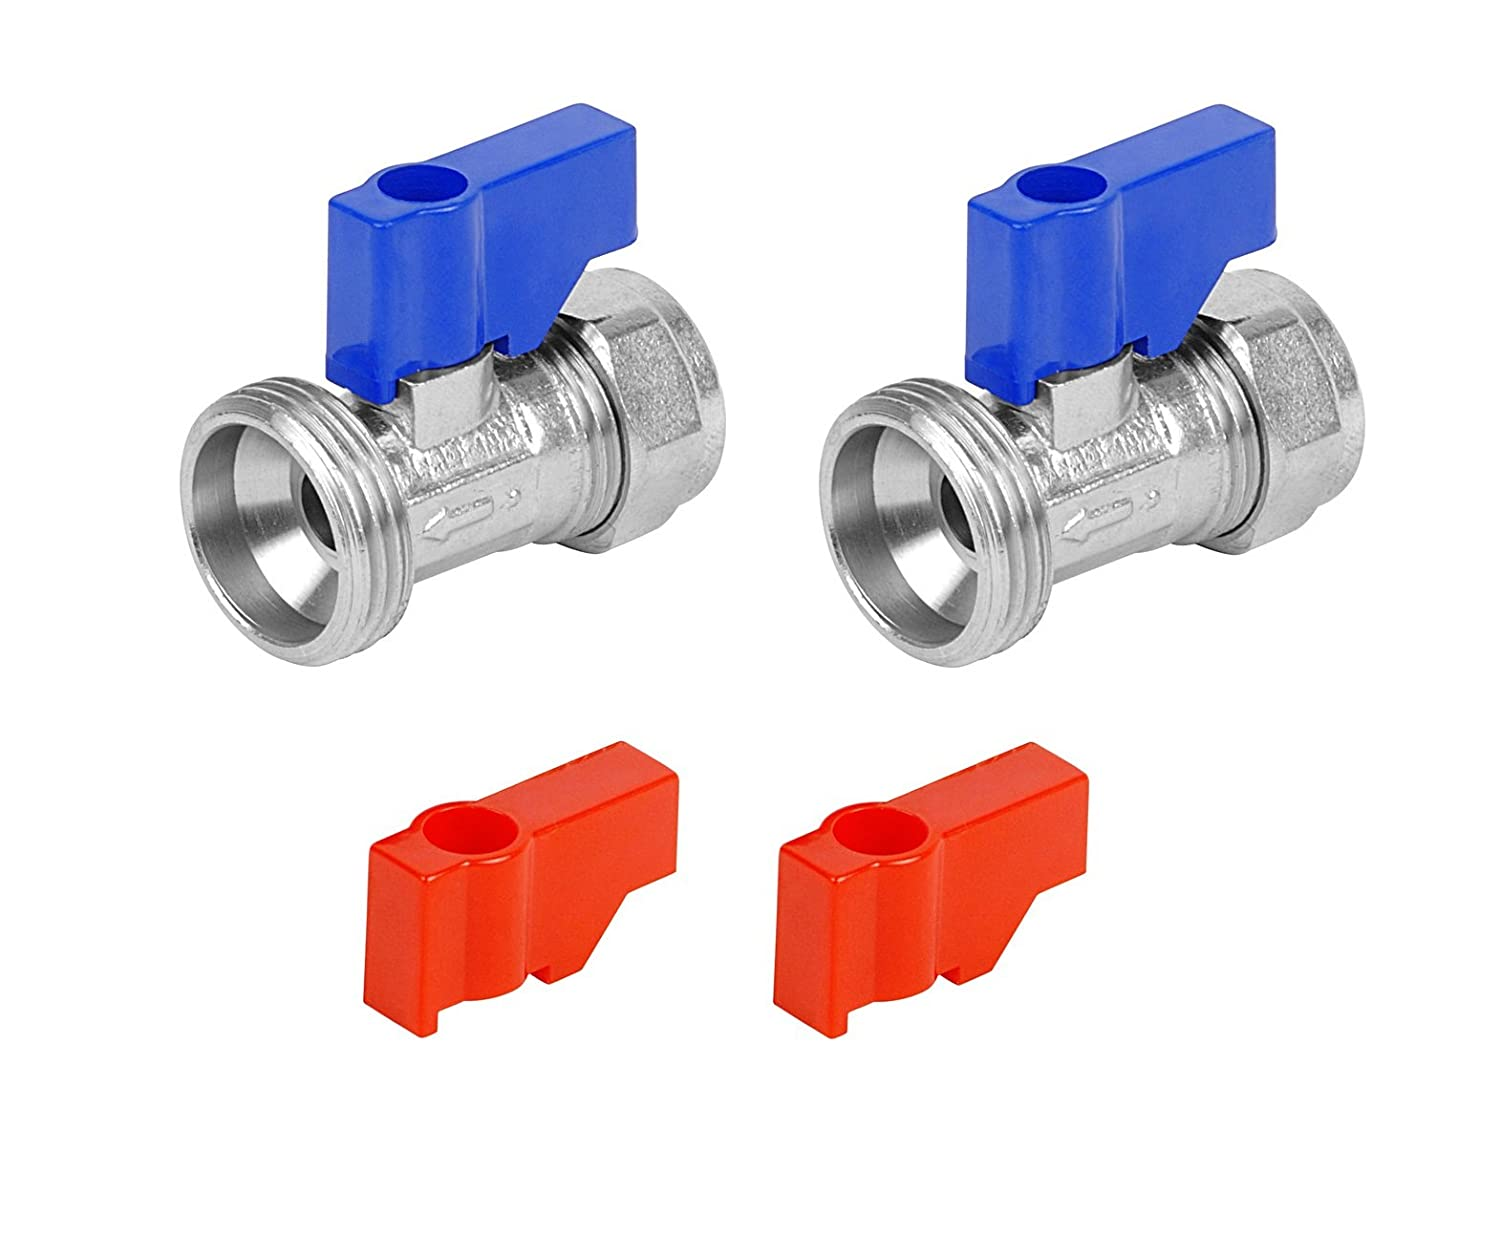 Invero® Pair of Hose Taps Straight for Washing Machines 15mm x 3/4' Includes 2x Blue Handles and 2x Red Handles (Hot and Cold) Invero®